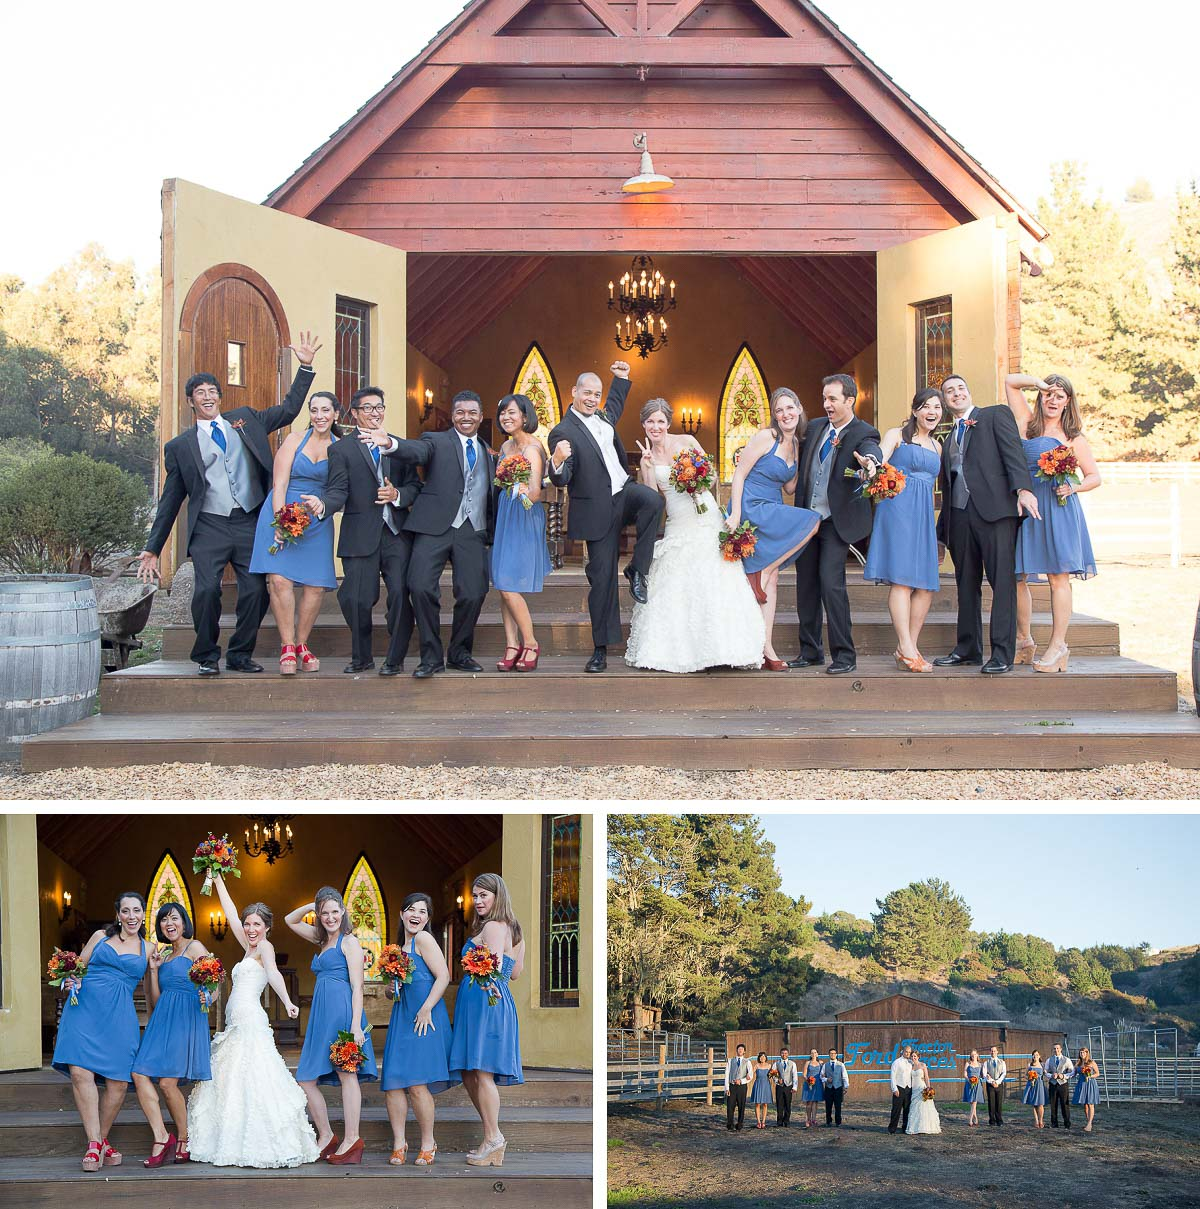 Lauren and Anthony's barn wedding in Half Moon Bay - wedding party in front of barn after ceremony